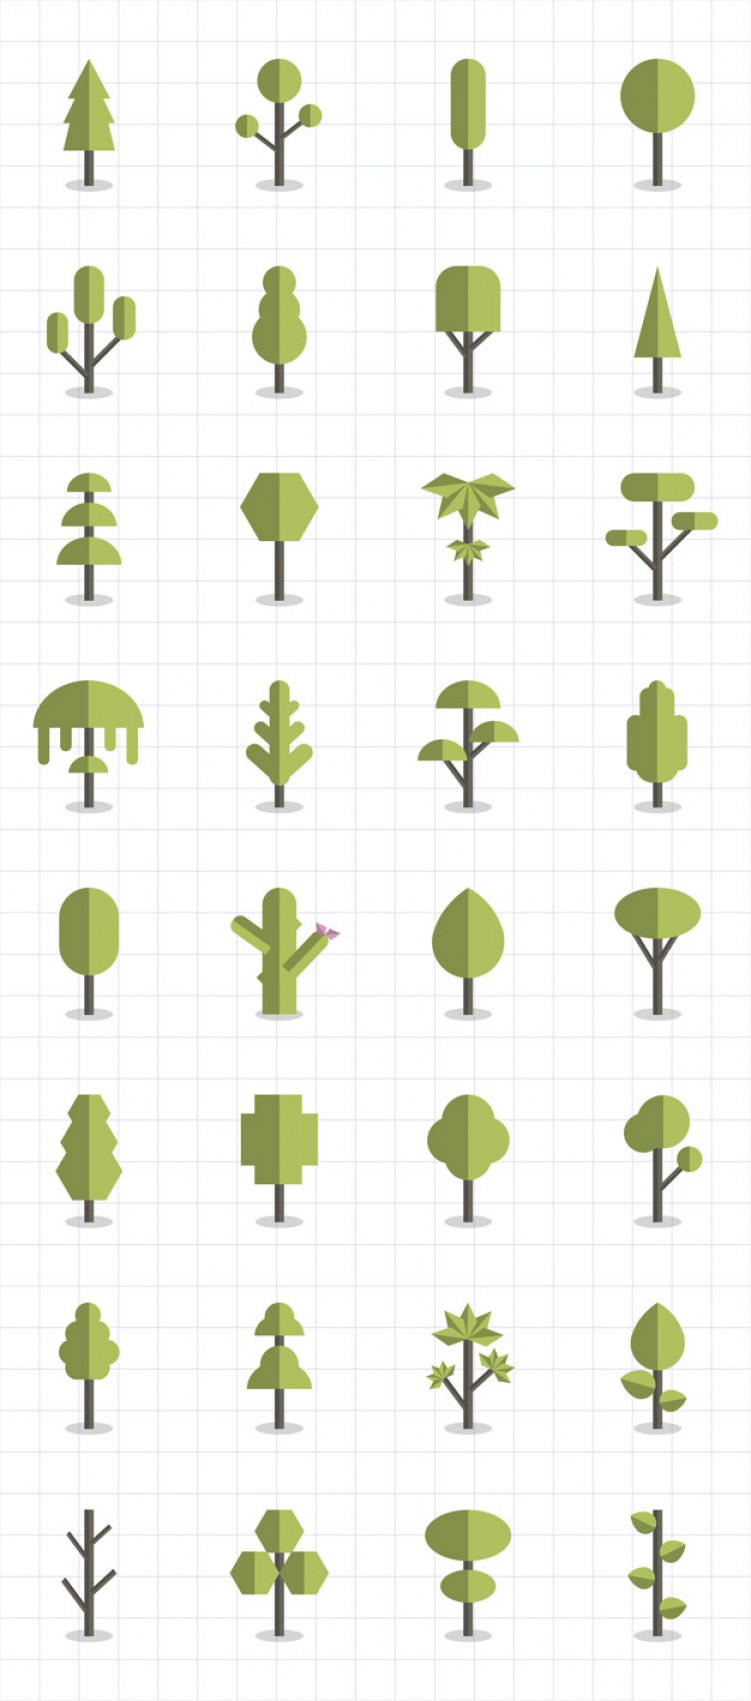 Free Vector Download Sites: Collection Of Plants And Tree Vectors